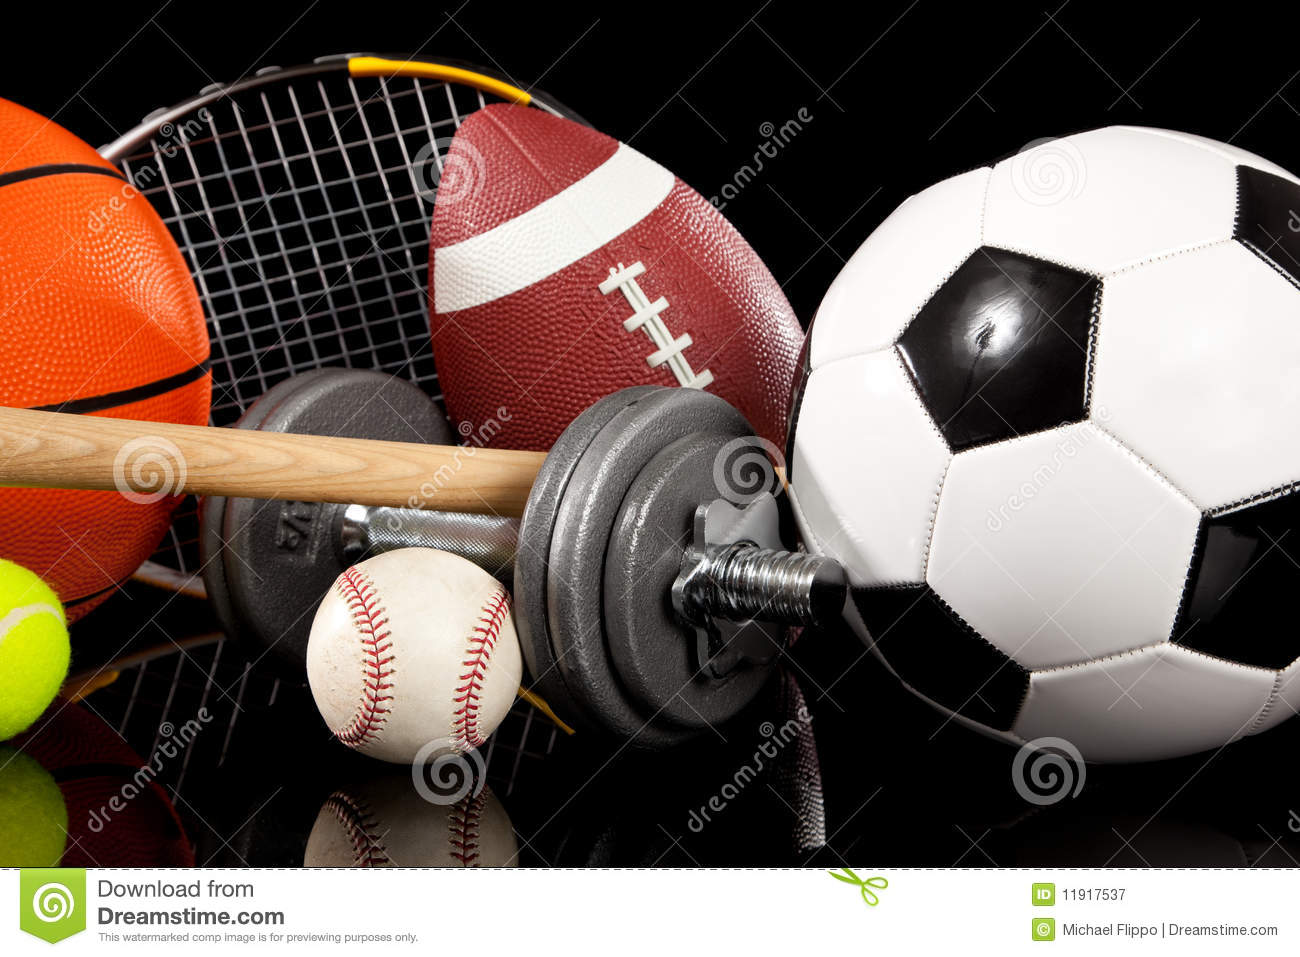 assorted-sports-equipment-black-11917537.jpg